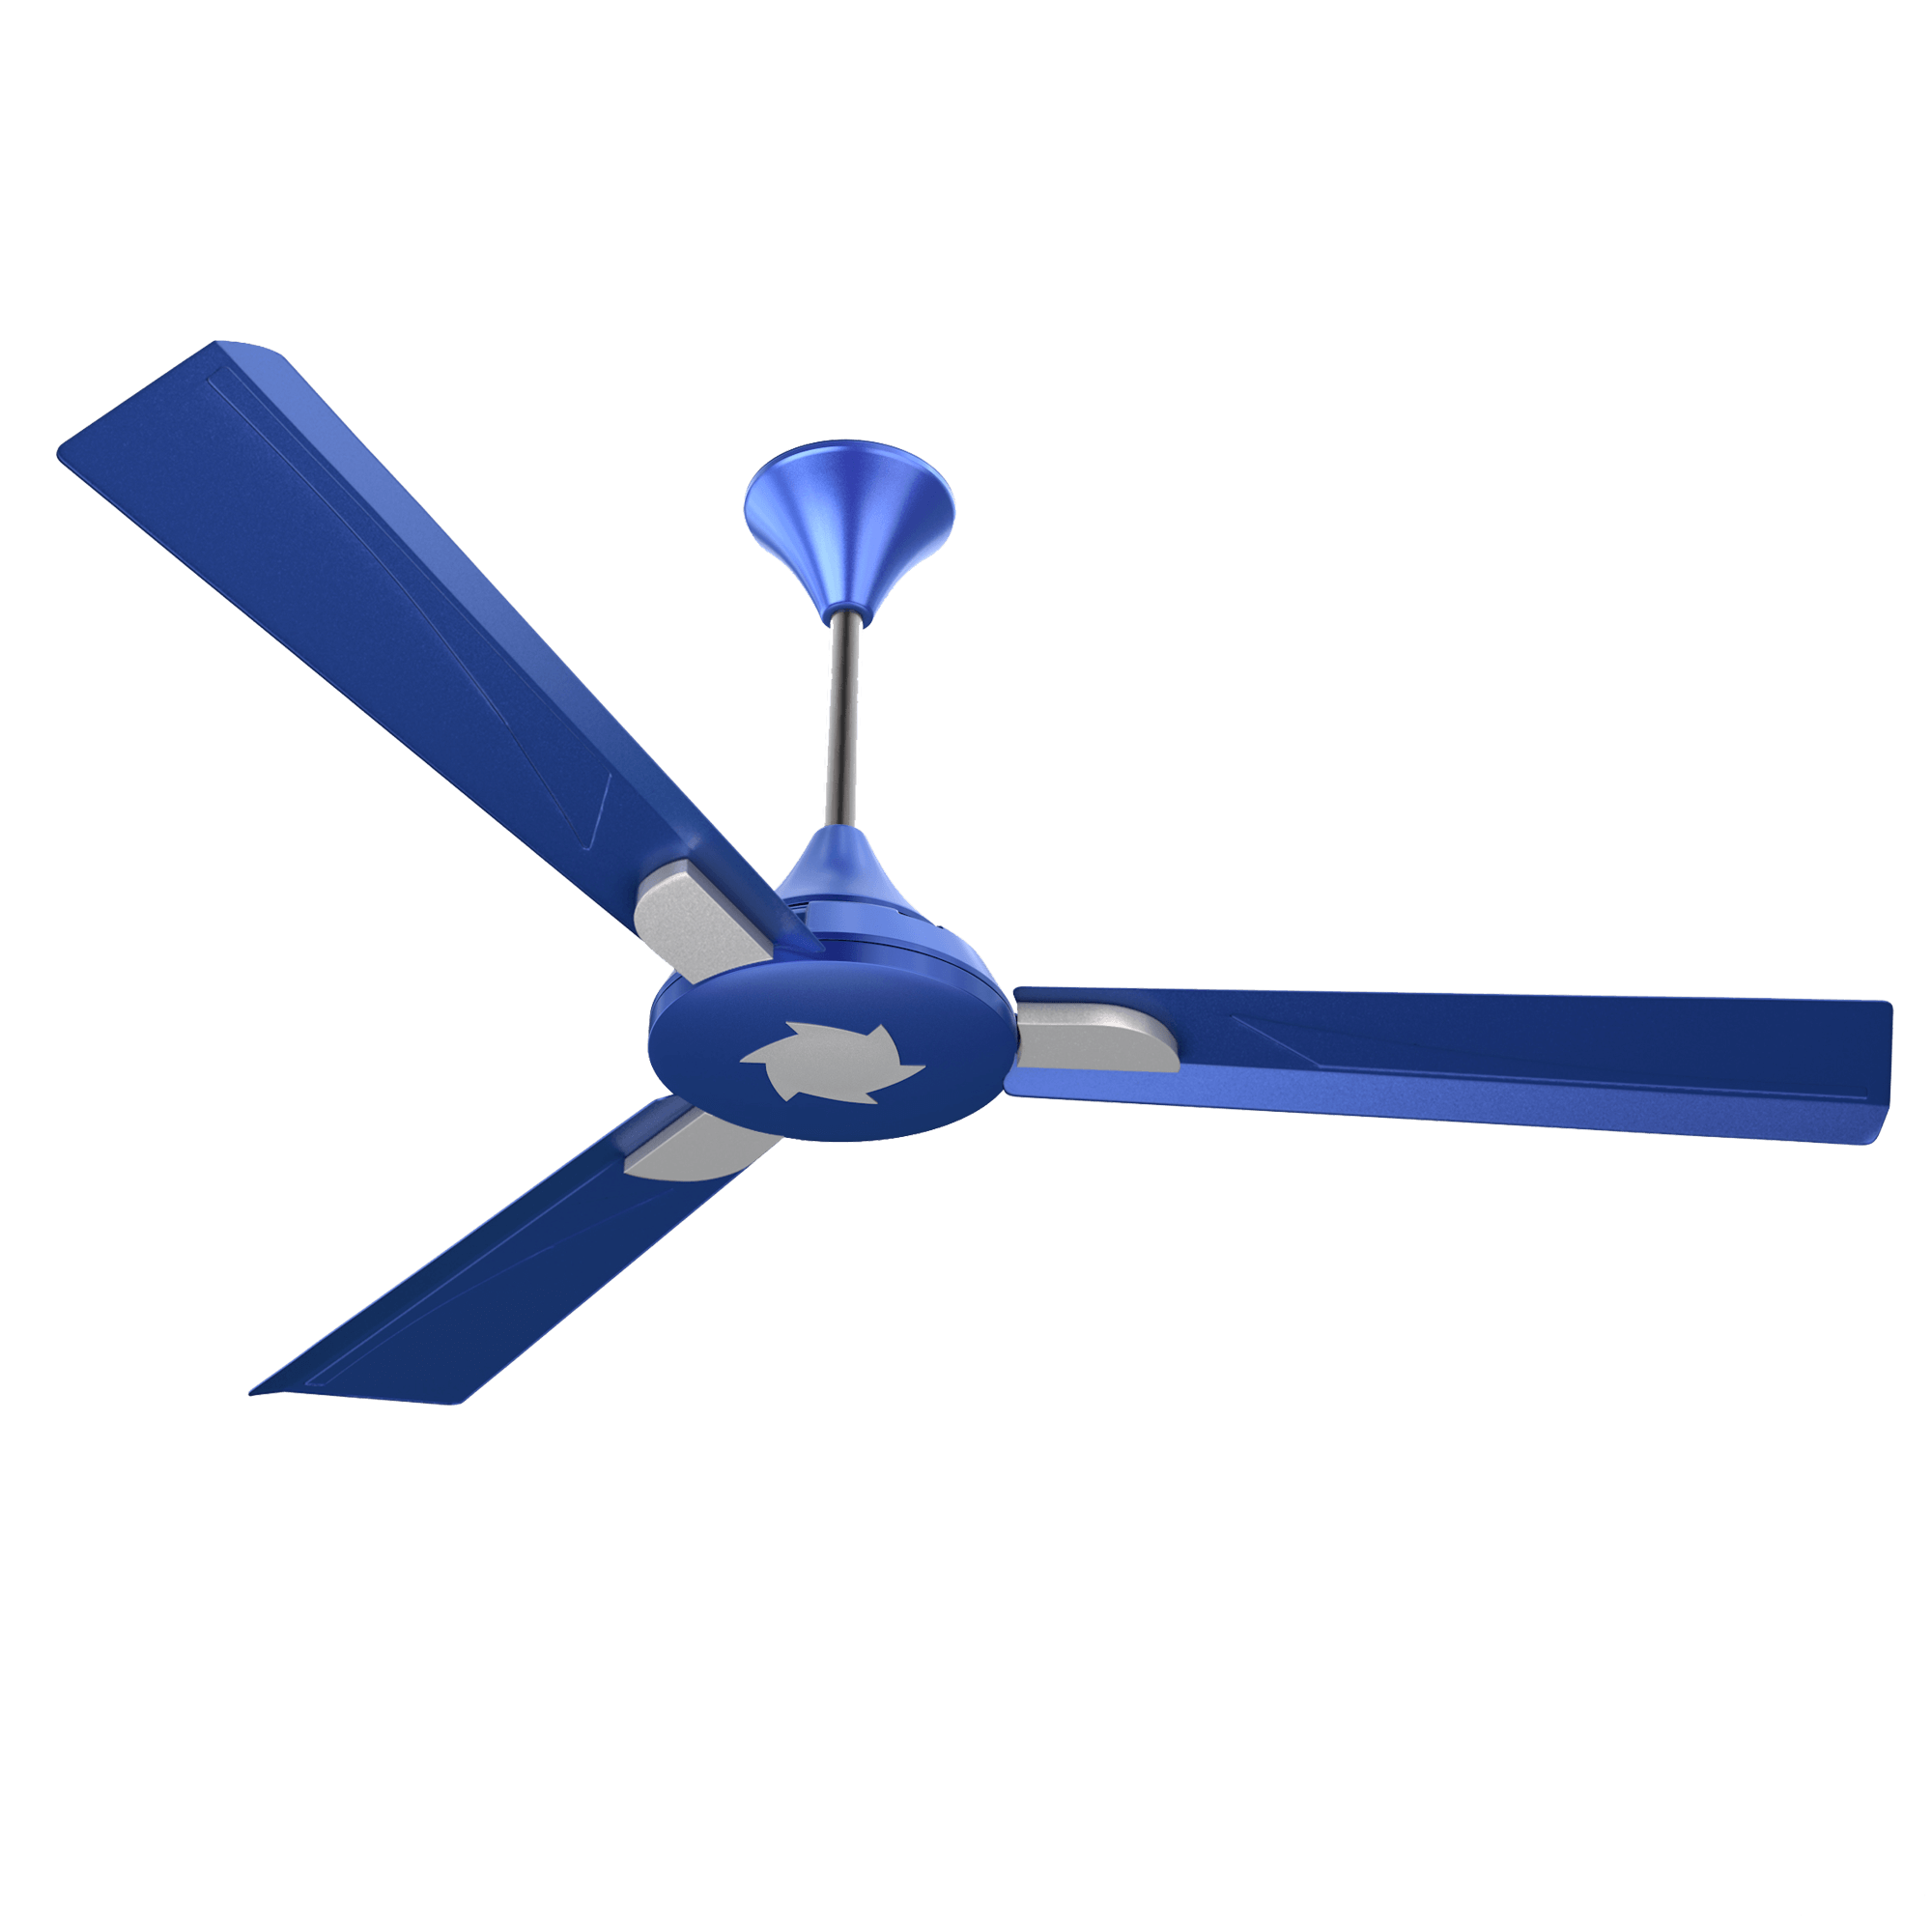 "Conion Ceiling Fan Sigma 56"" 3 Blades (Sparking Blue)"